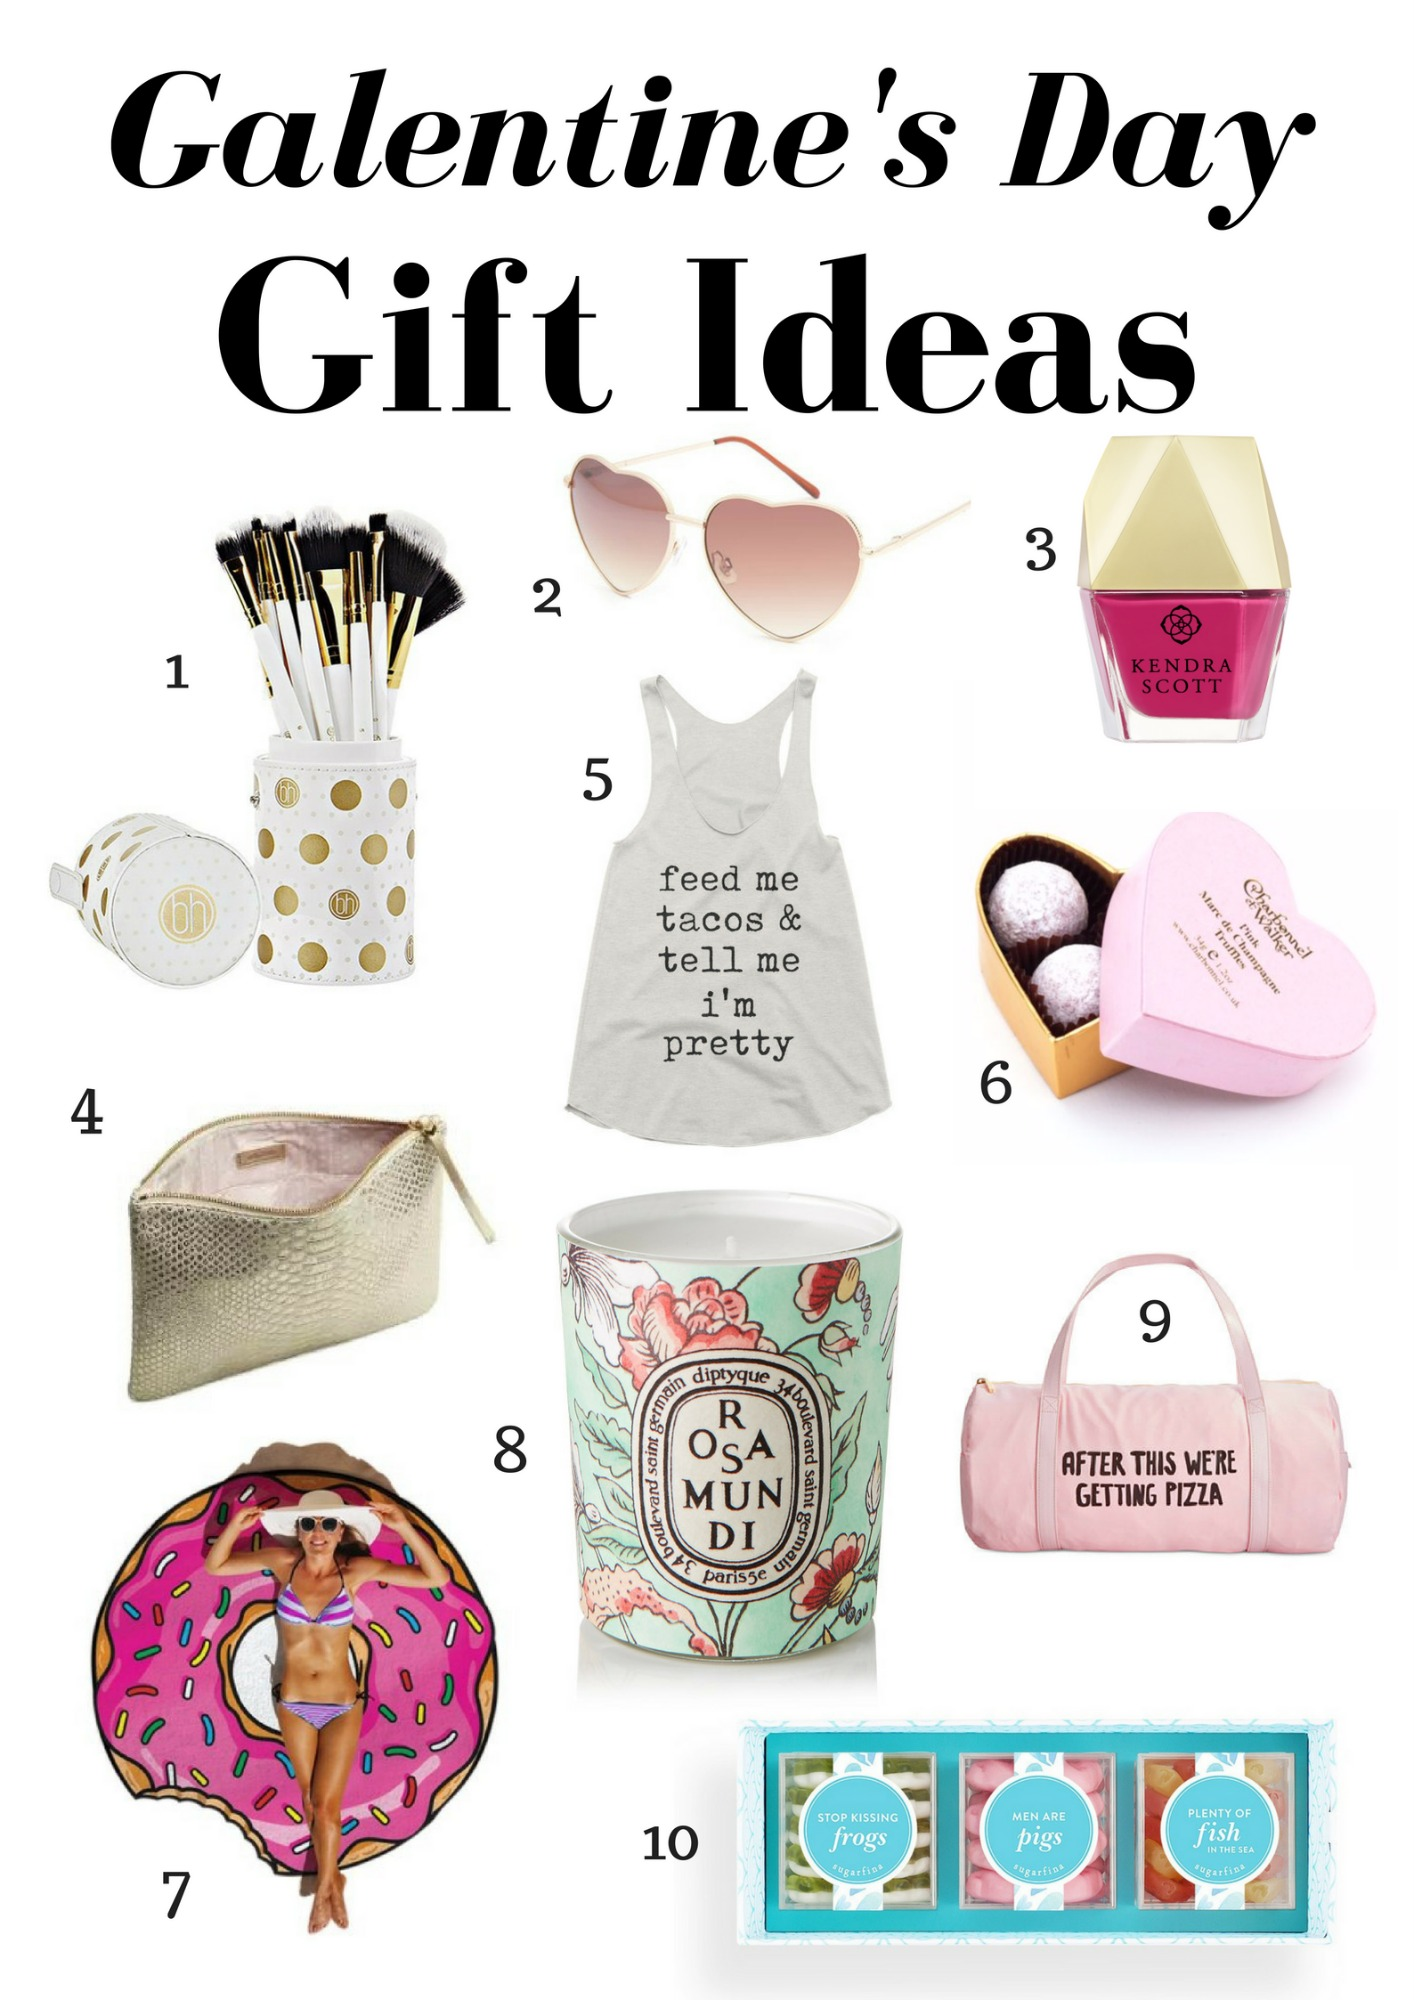 Galentine's Day Gift Guide 2017 | January Hart Blog